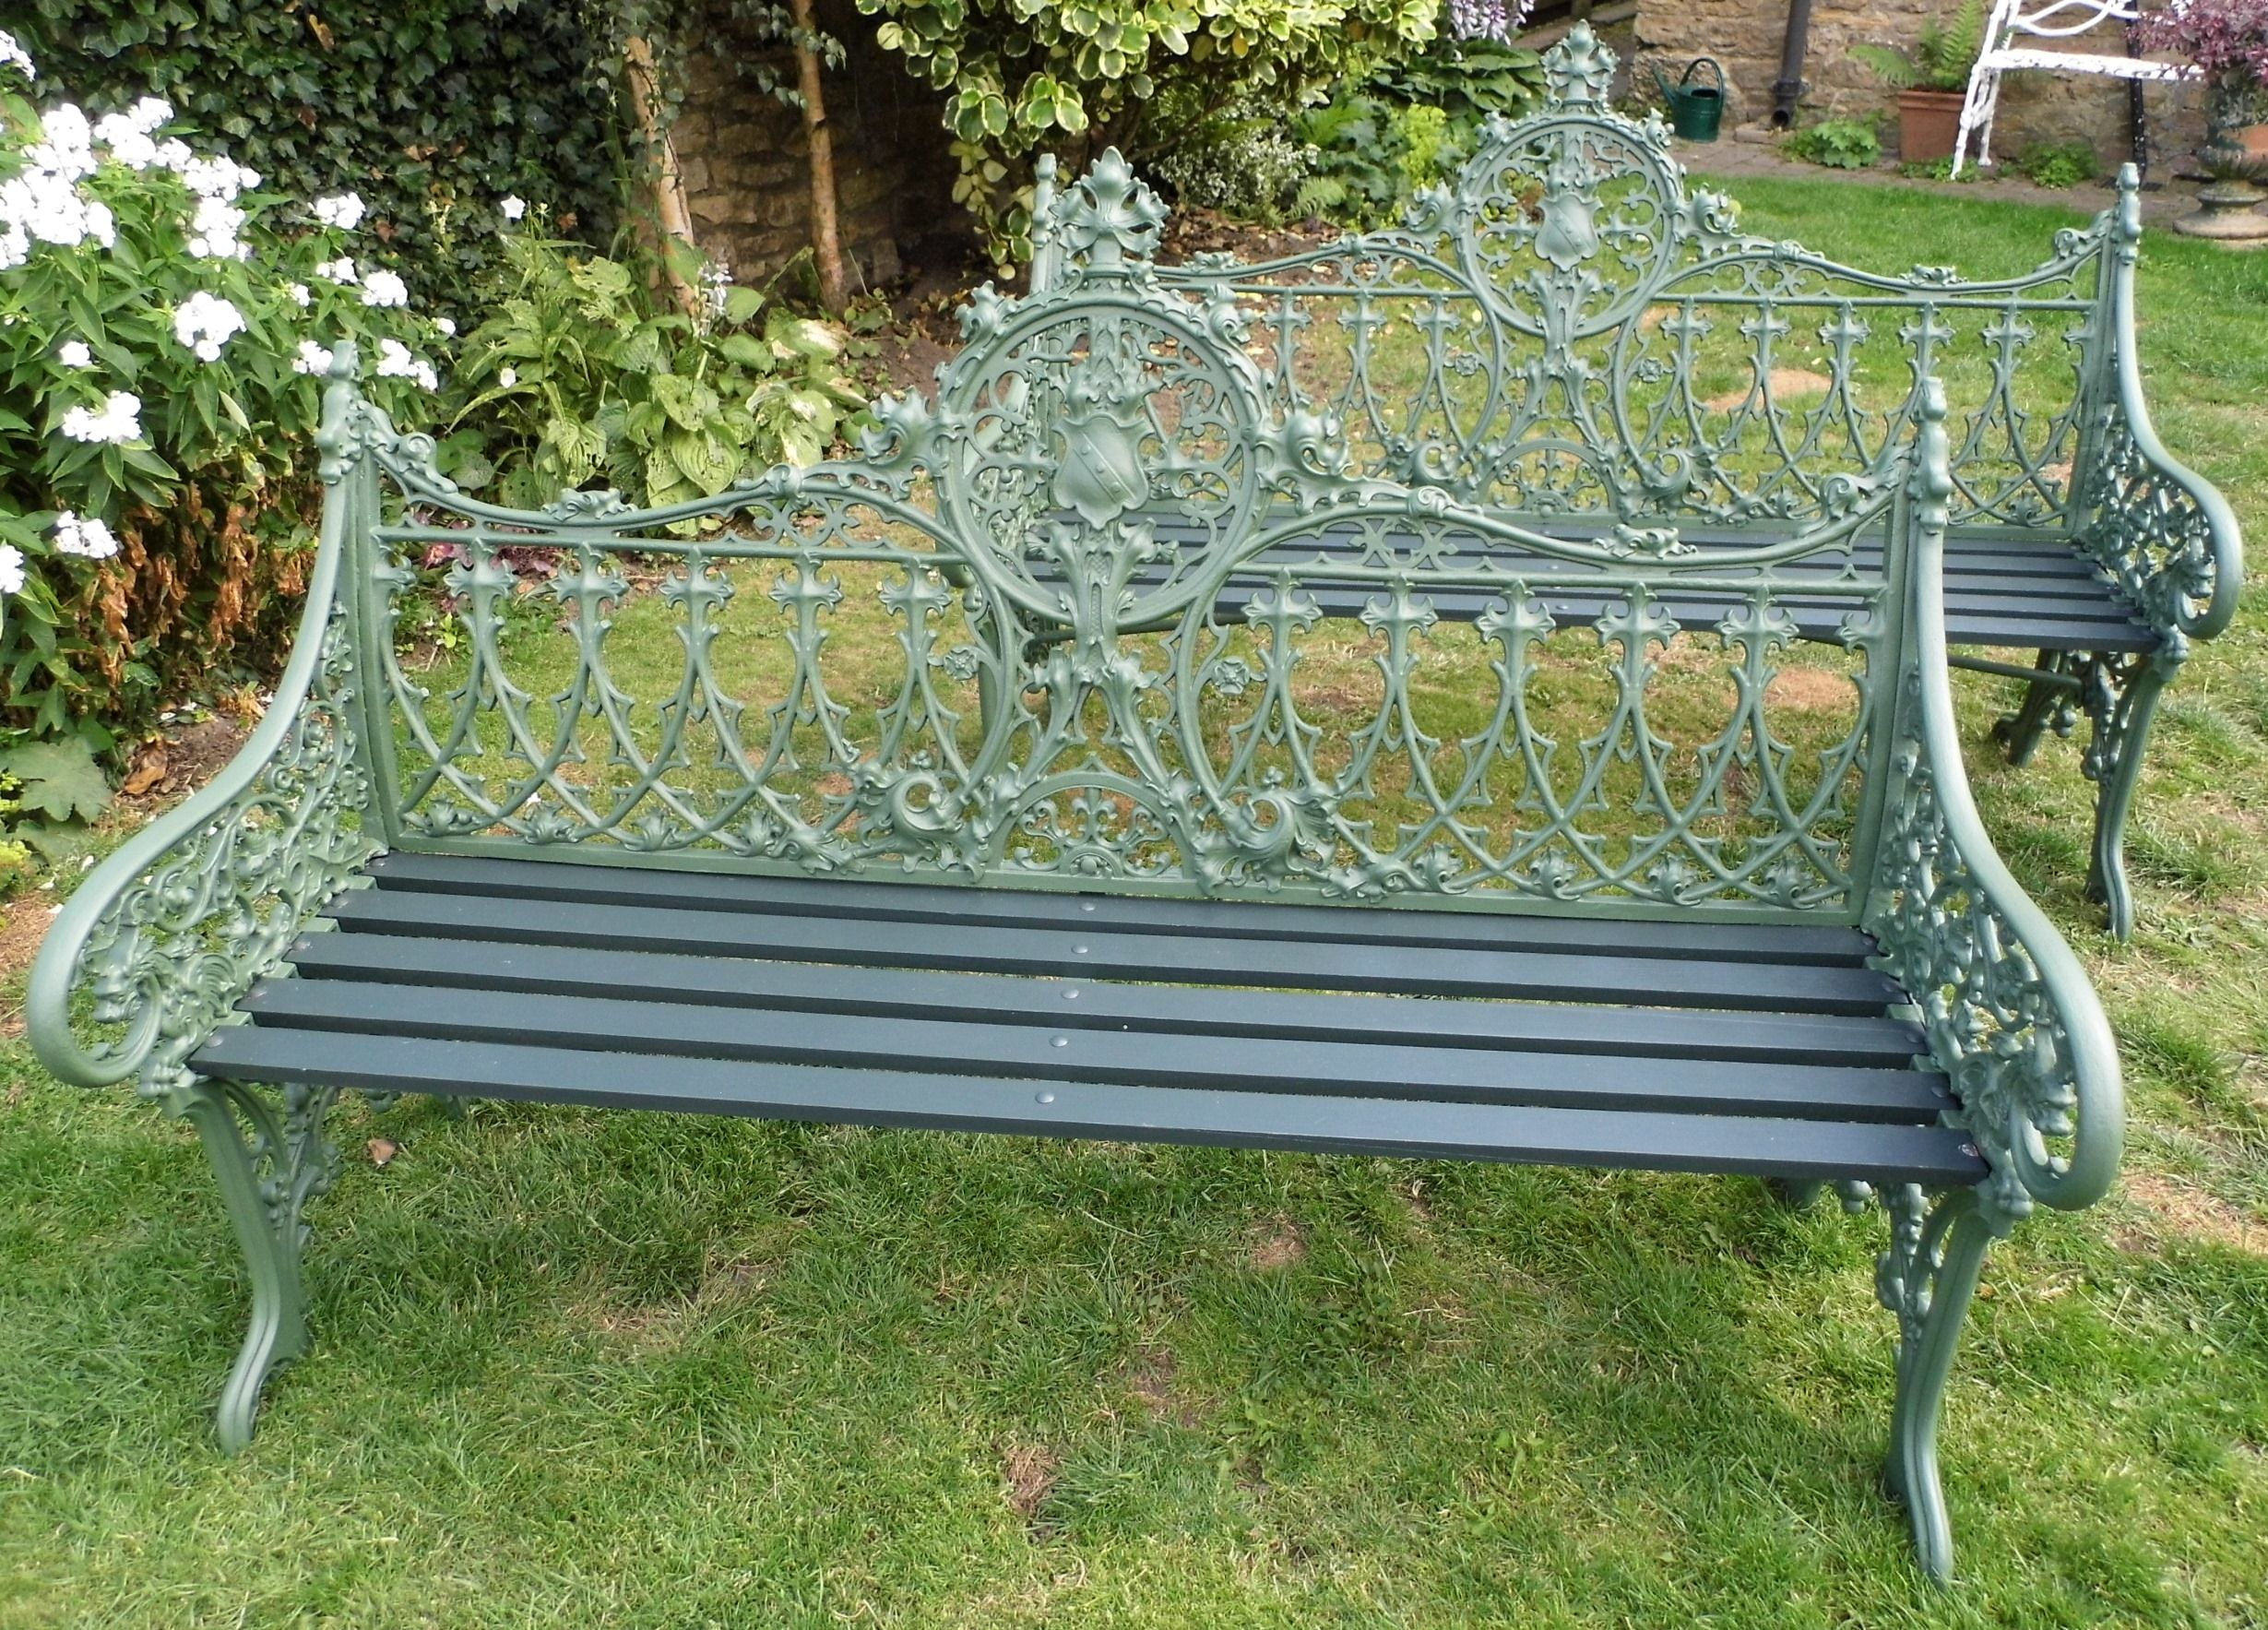 furniture metal steel porch best products itm chair frame outdoor bcp choice bench garden park yard patio